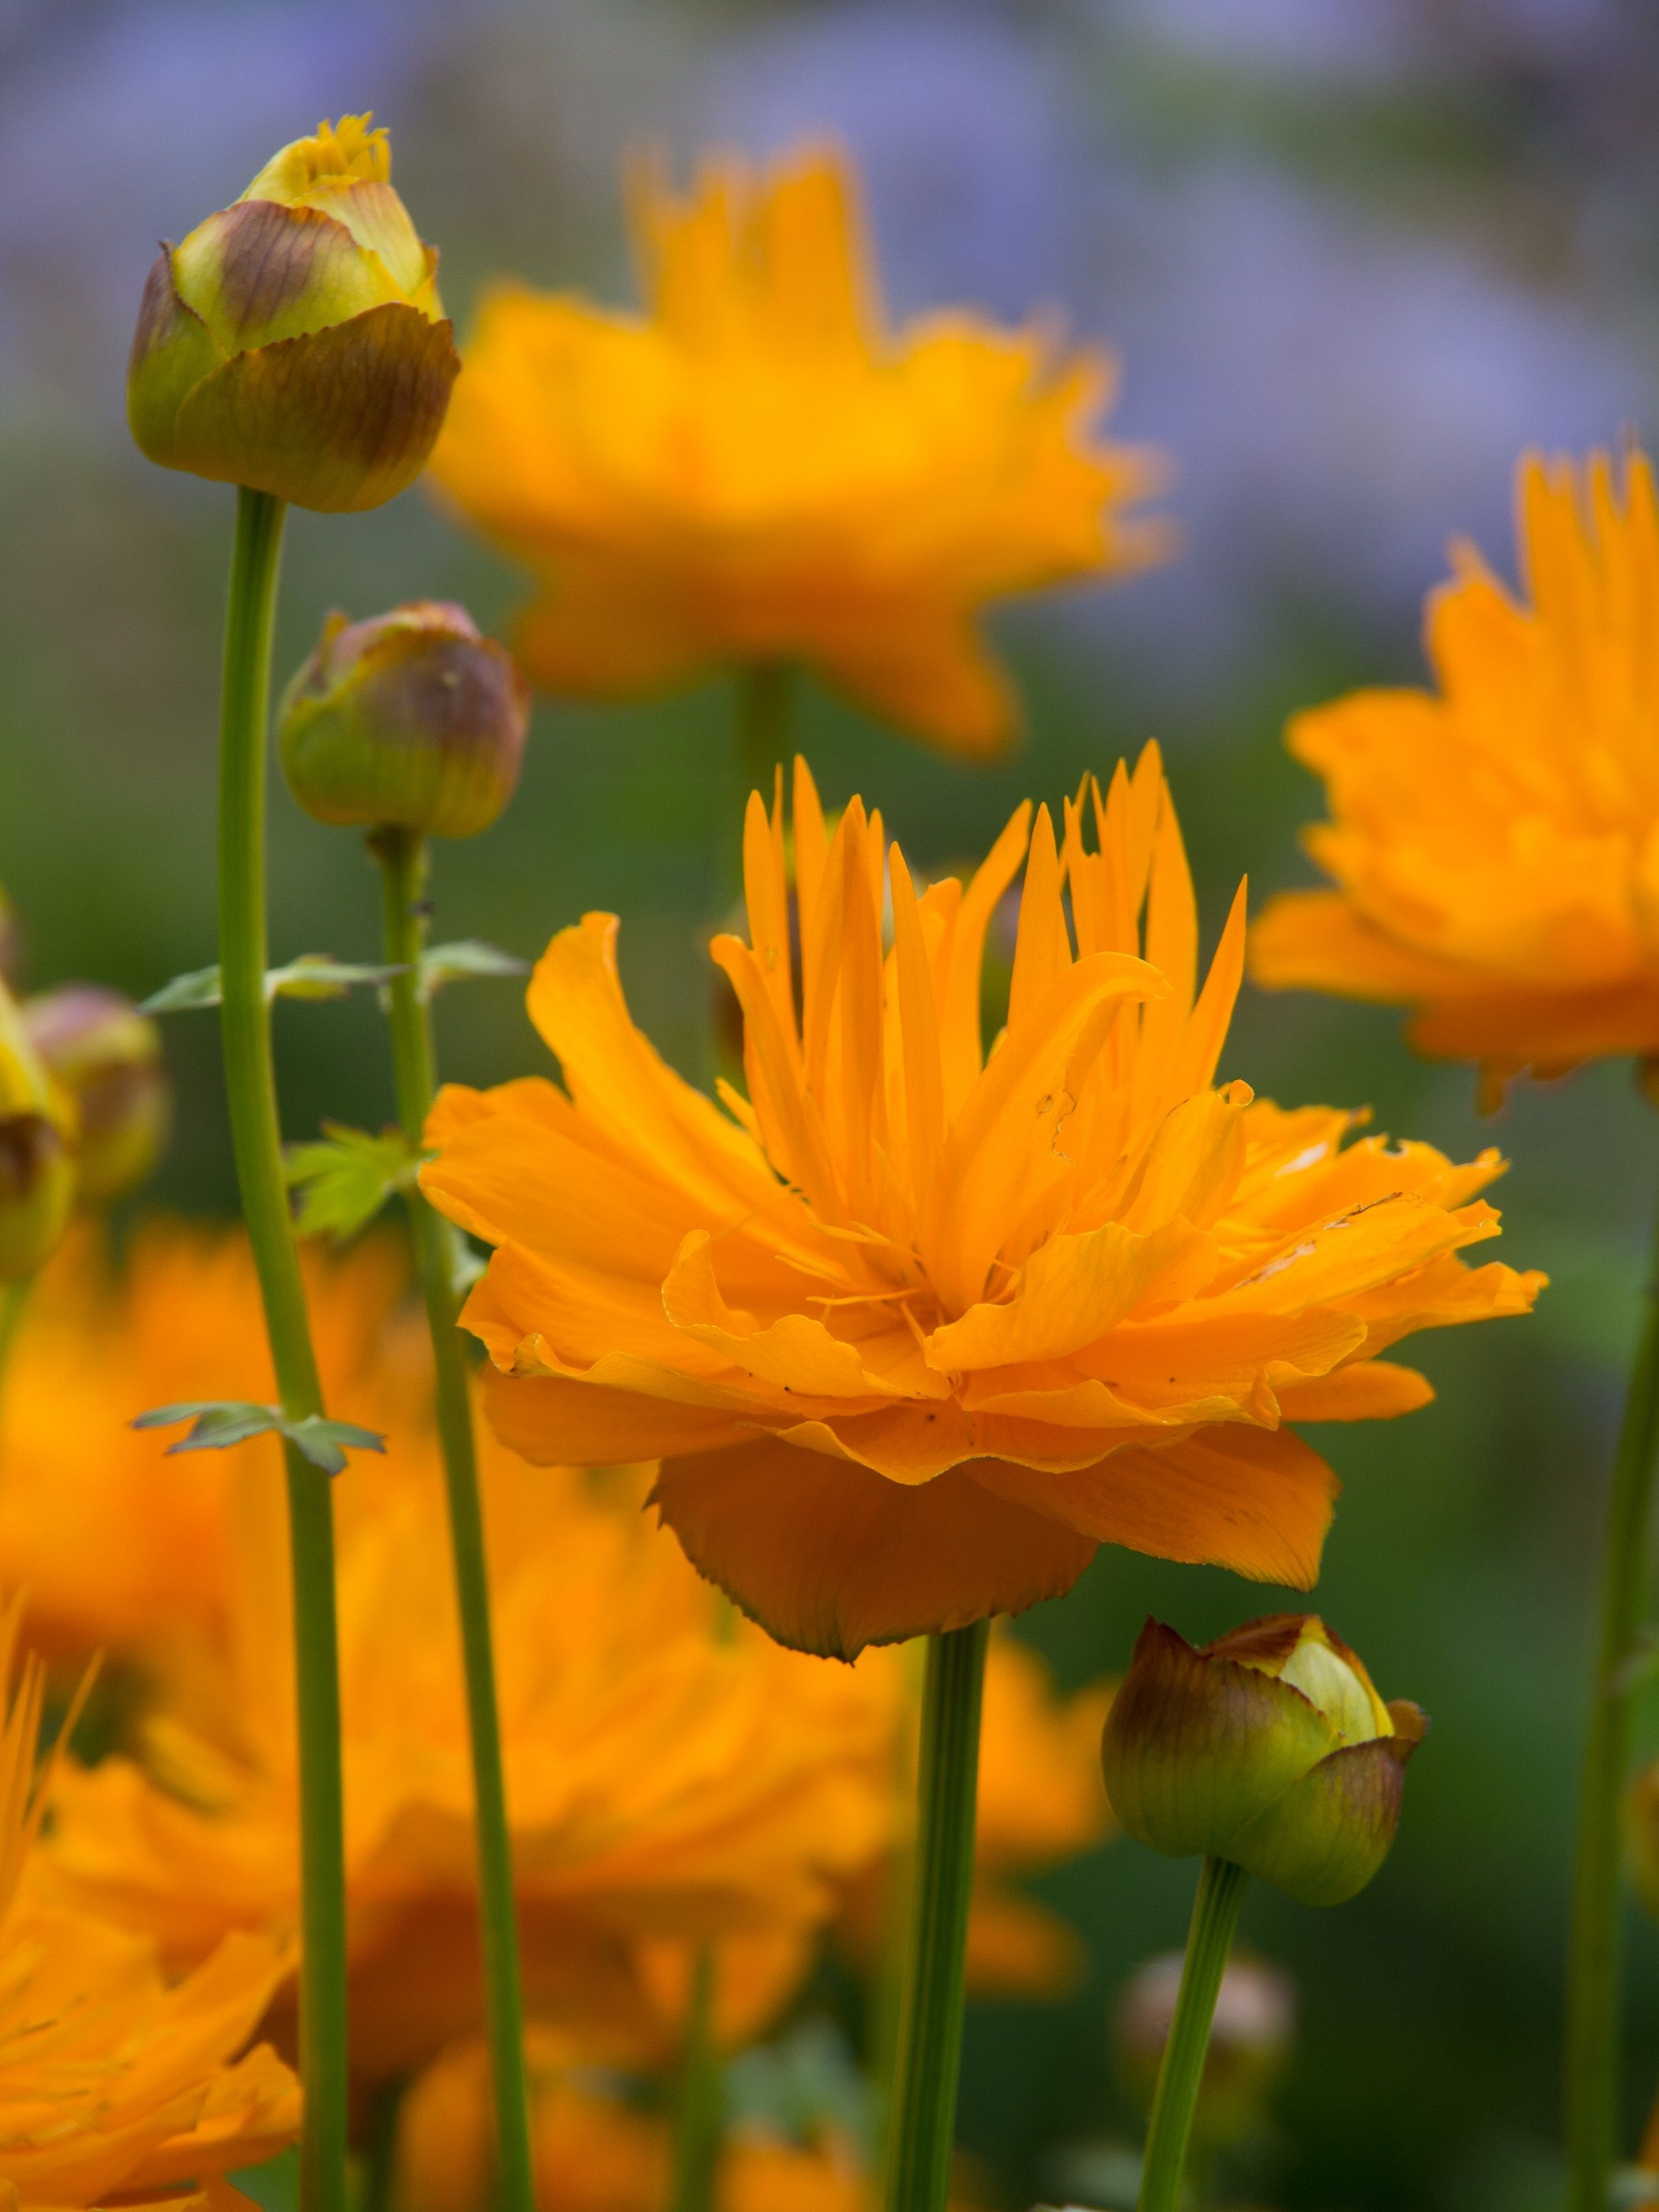 Trollius 'Dancing Flame' took Best in Show title at New